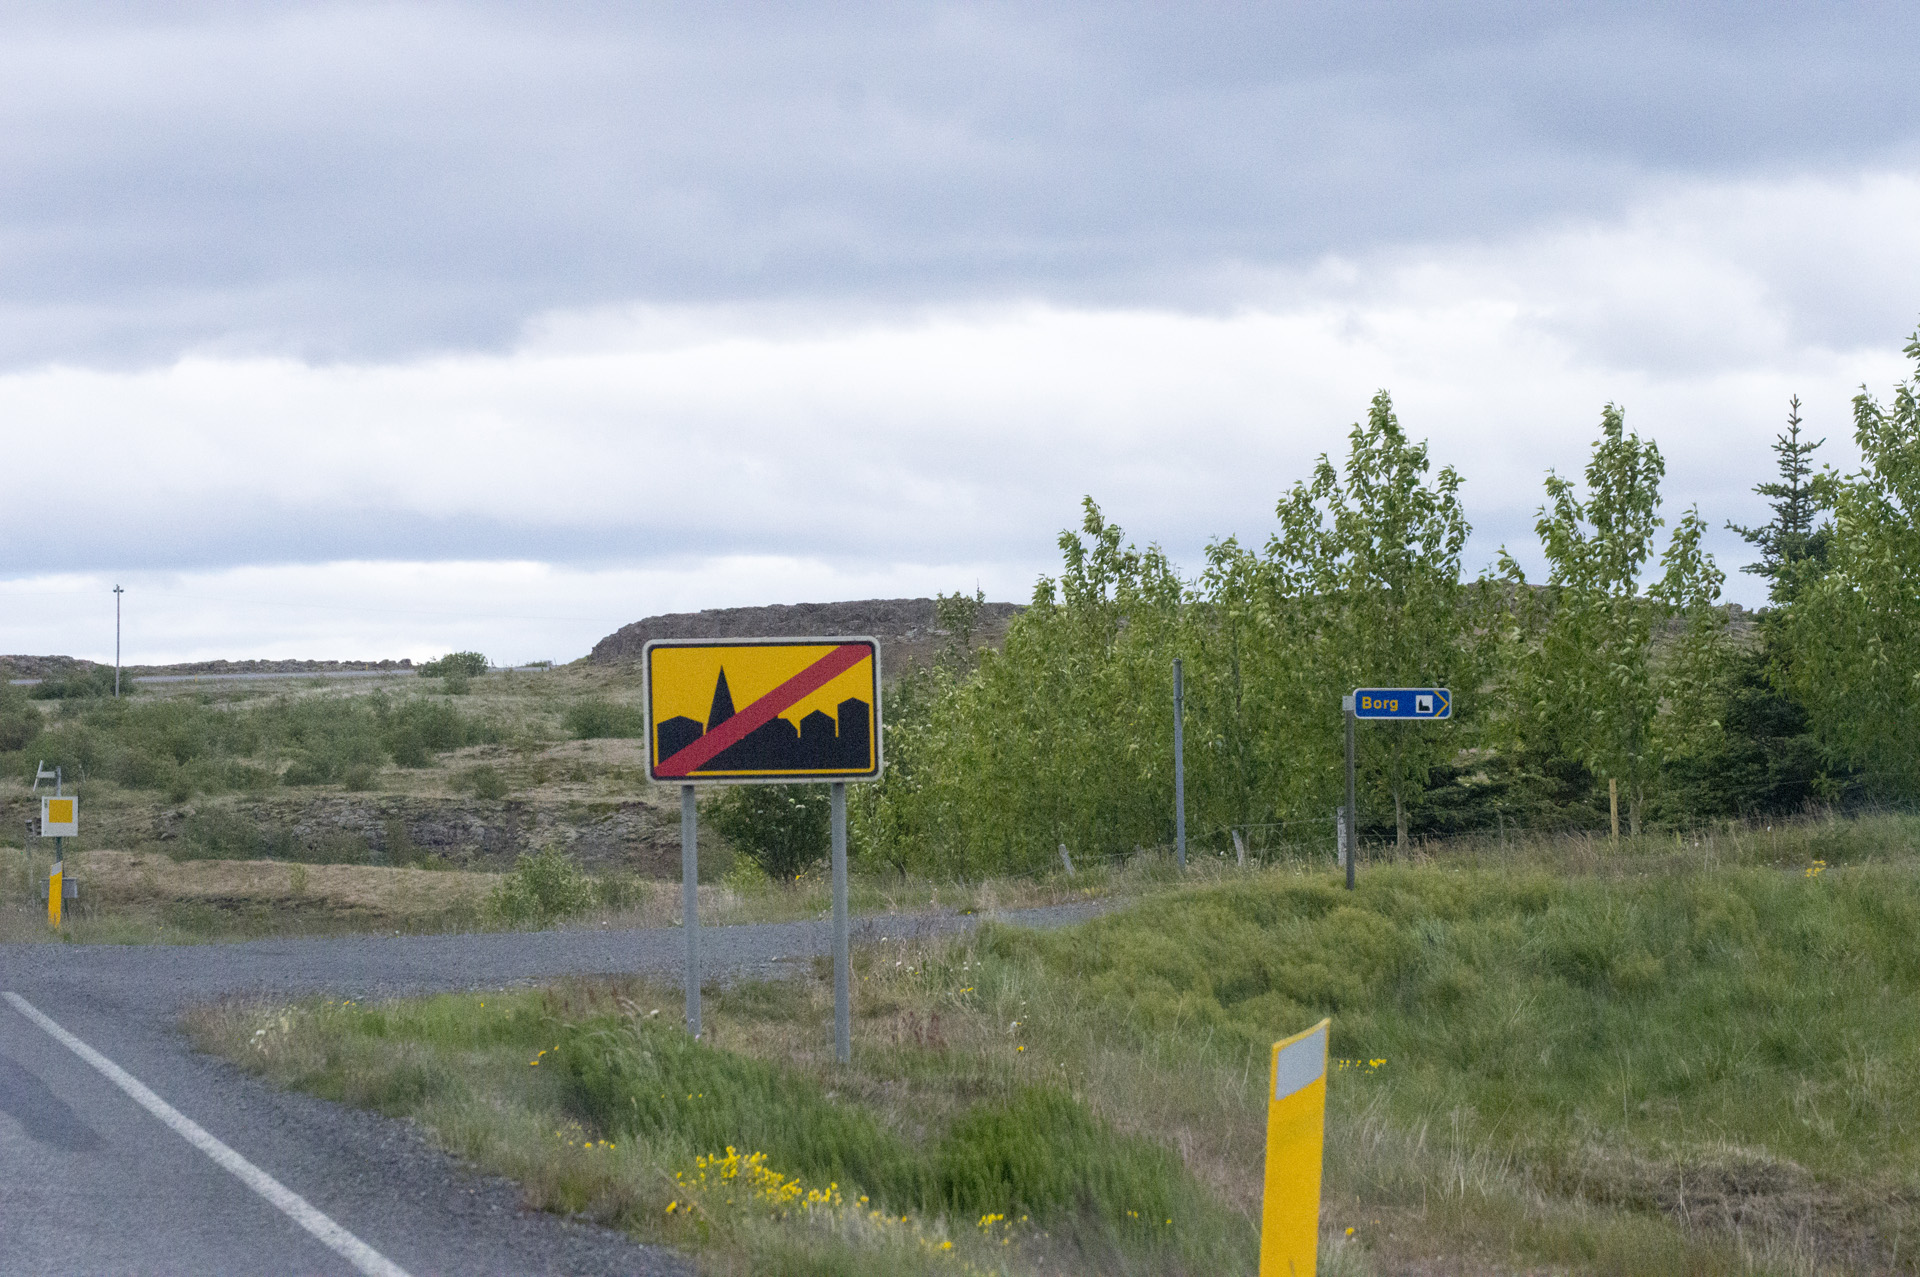 Example of a sign indicating the end of city limits. This sign is northbound on Snæfellsnesvegur, leaving Borgarnes, Vesturland region, Iceland.